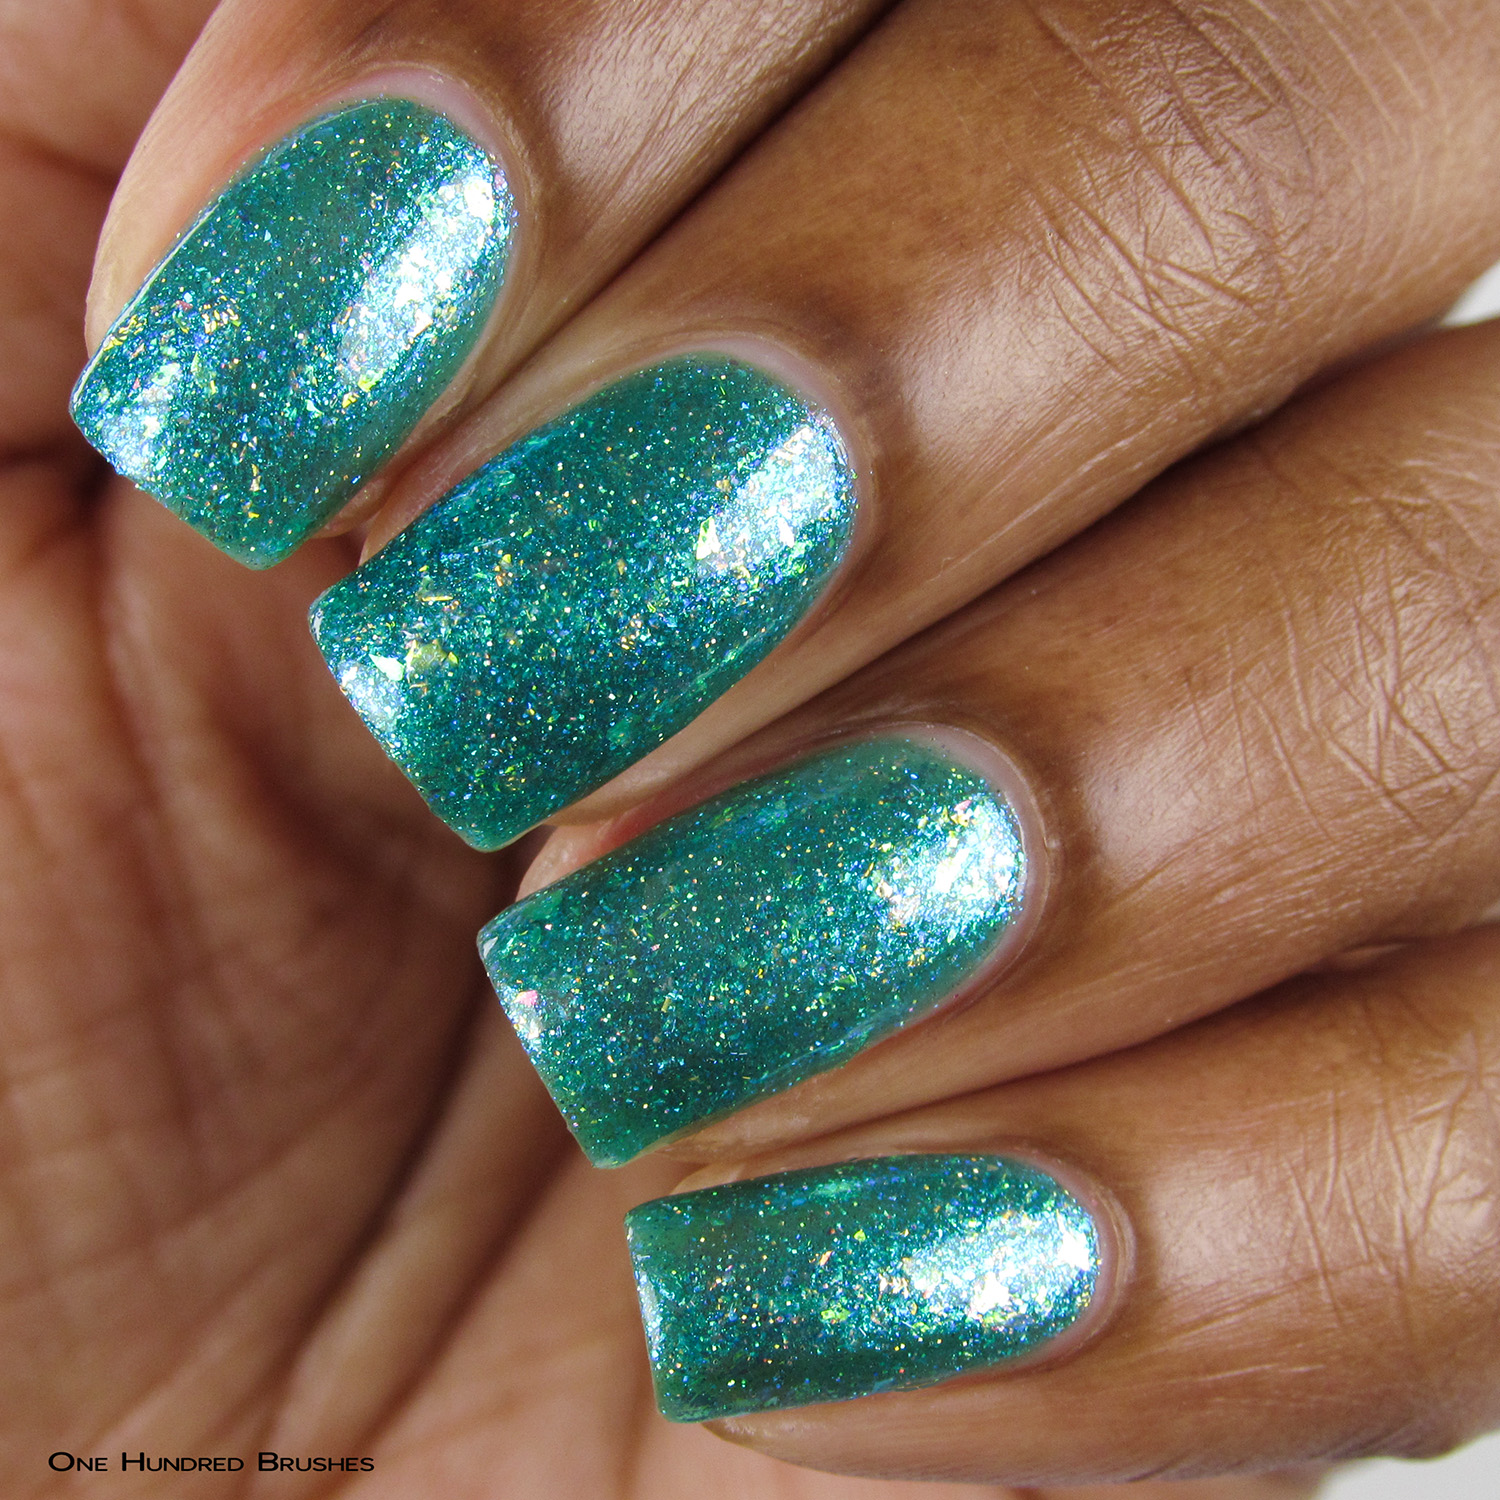 I Washed Up Like This - Closeup - Rogue Lacquer - Sirens of Summer June 2017